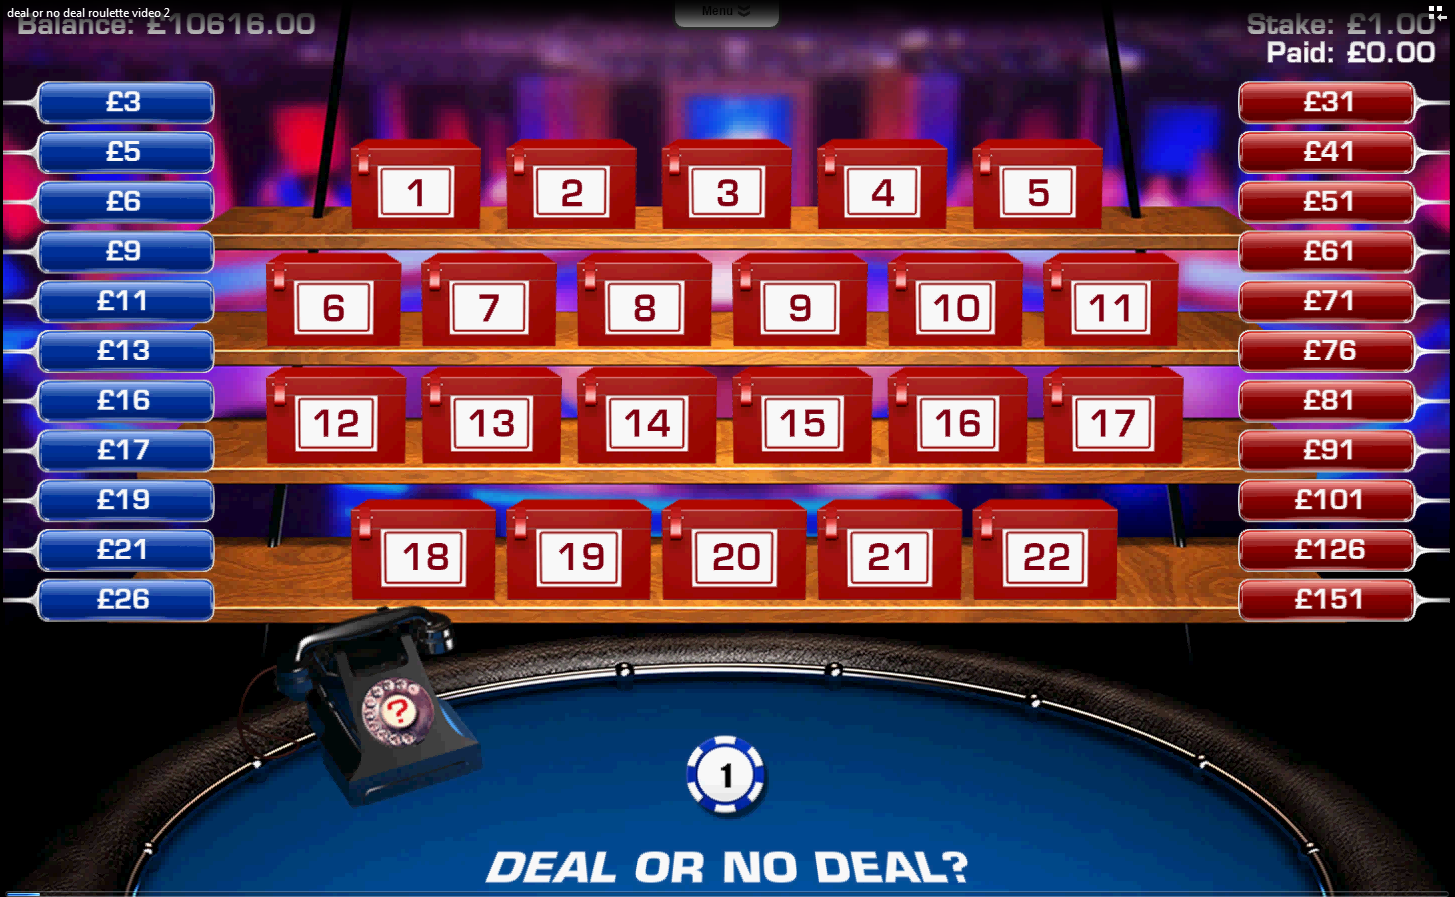 deal or no deal rules